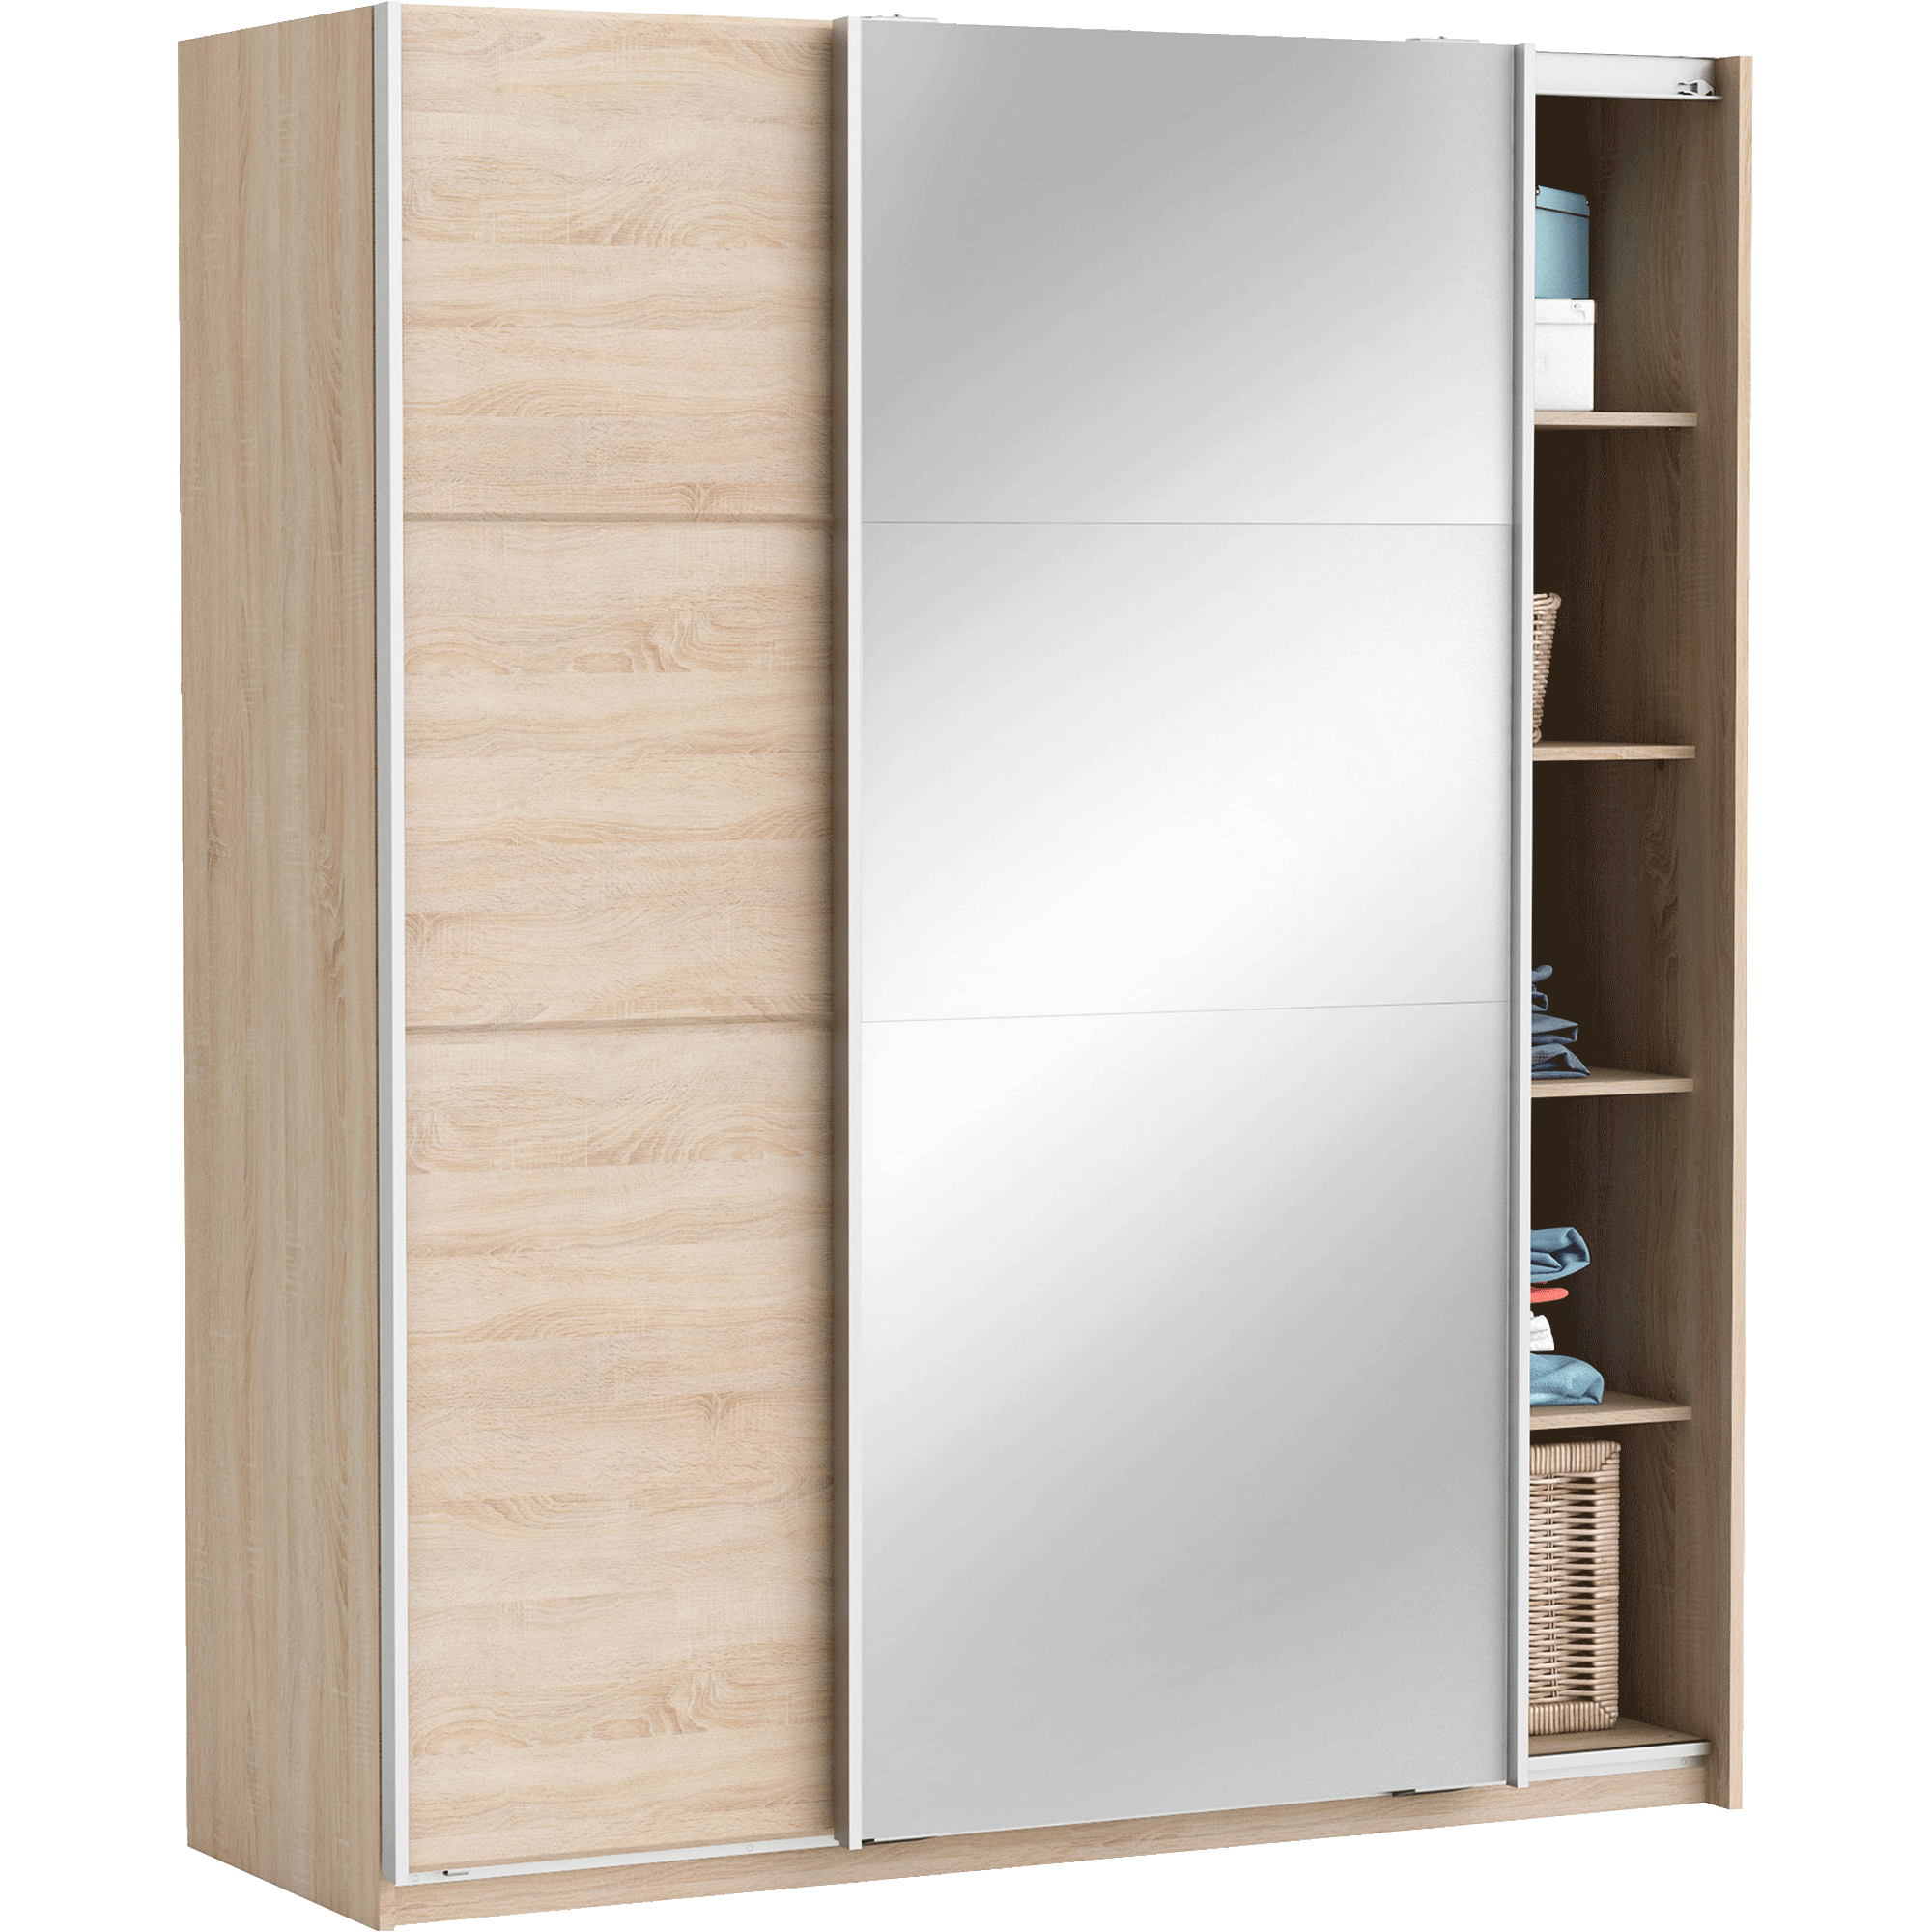 Armoire 2 Portes Coulissantes Effet Chne Bross SLIDY